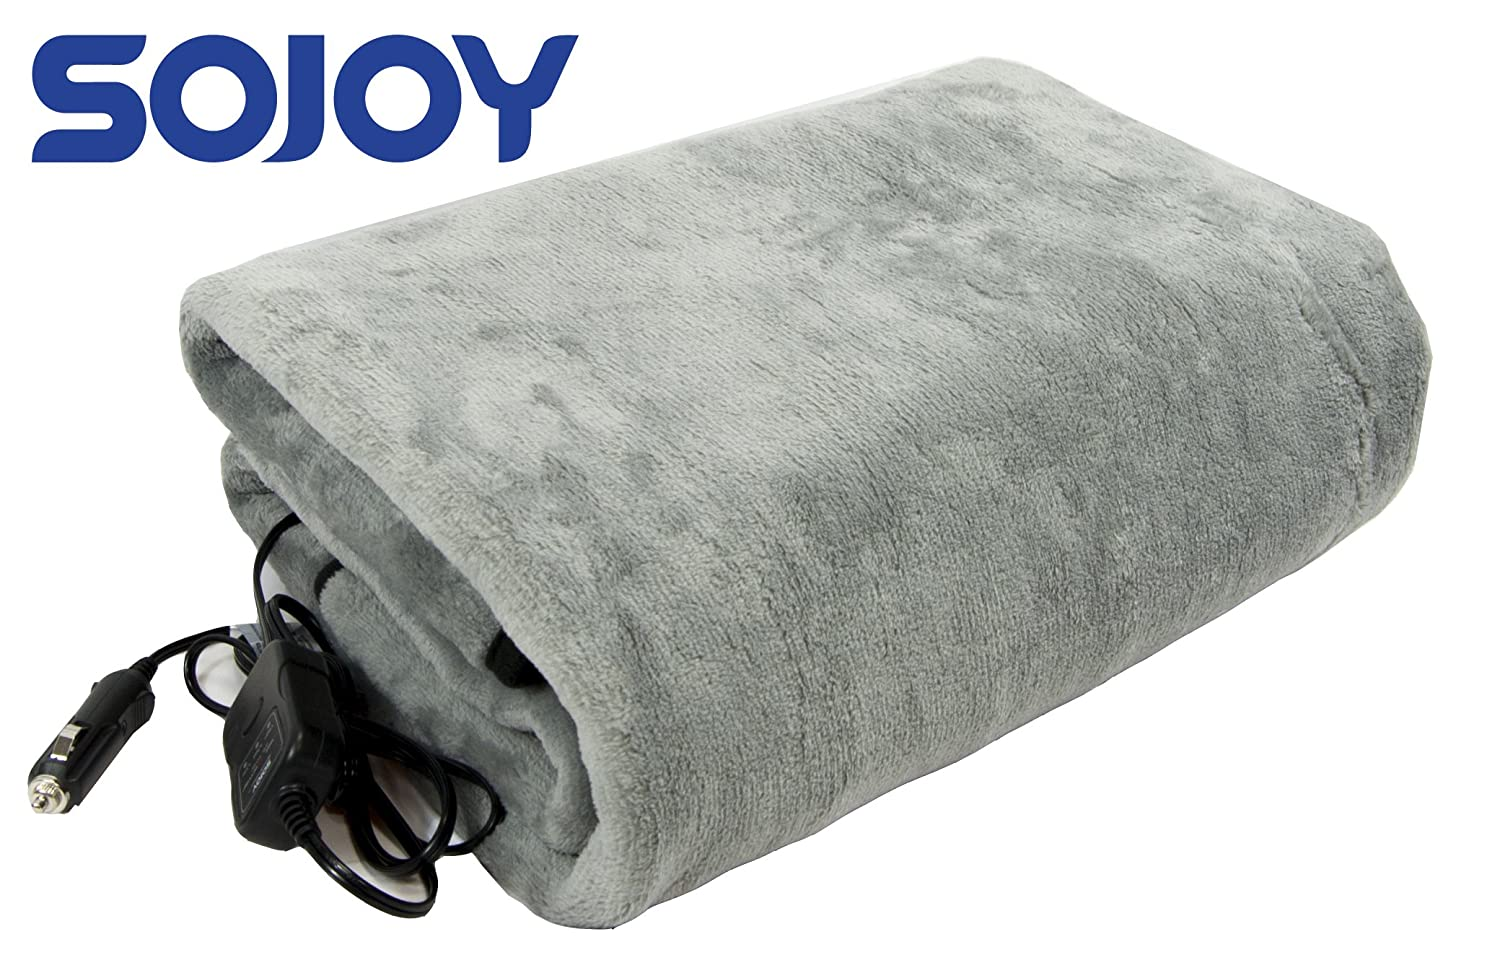 Navy 12V Heated Travel Electric Blanket with 45 Timer for Car Truck Boats or RV